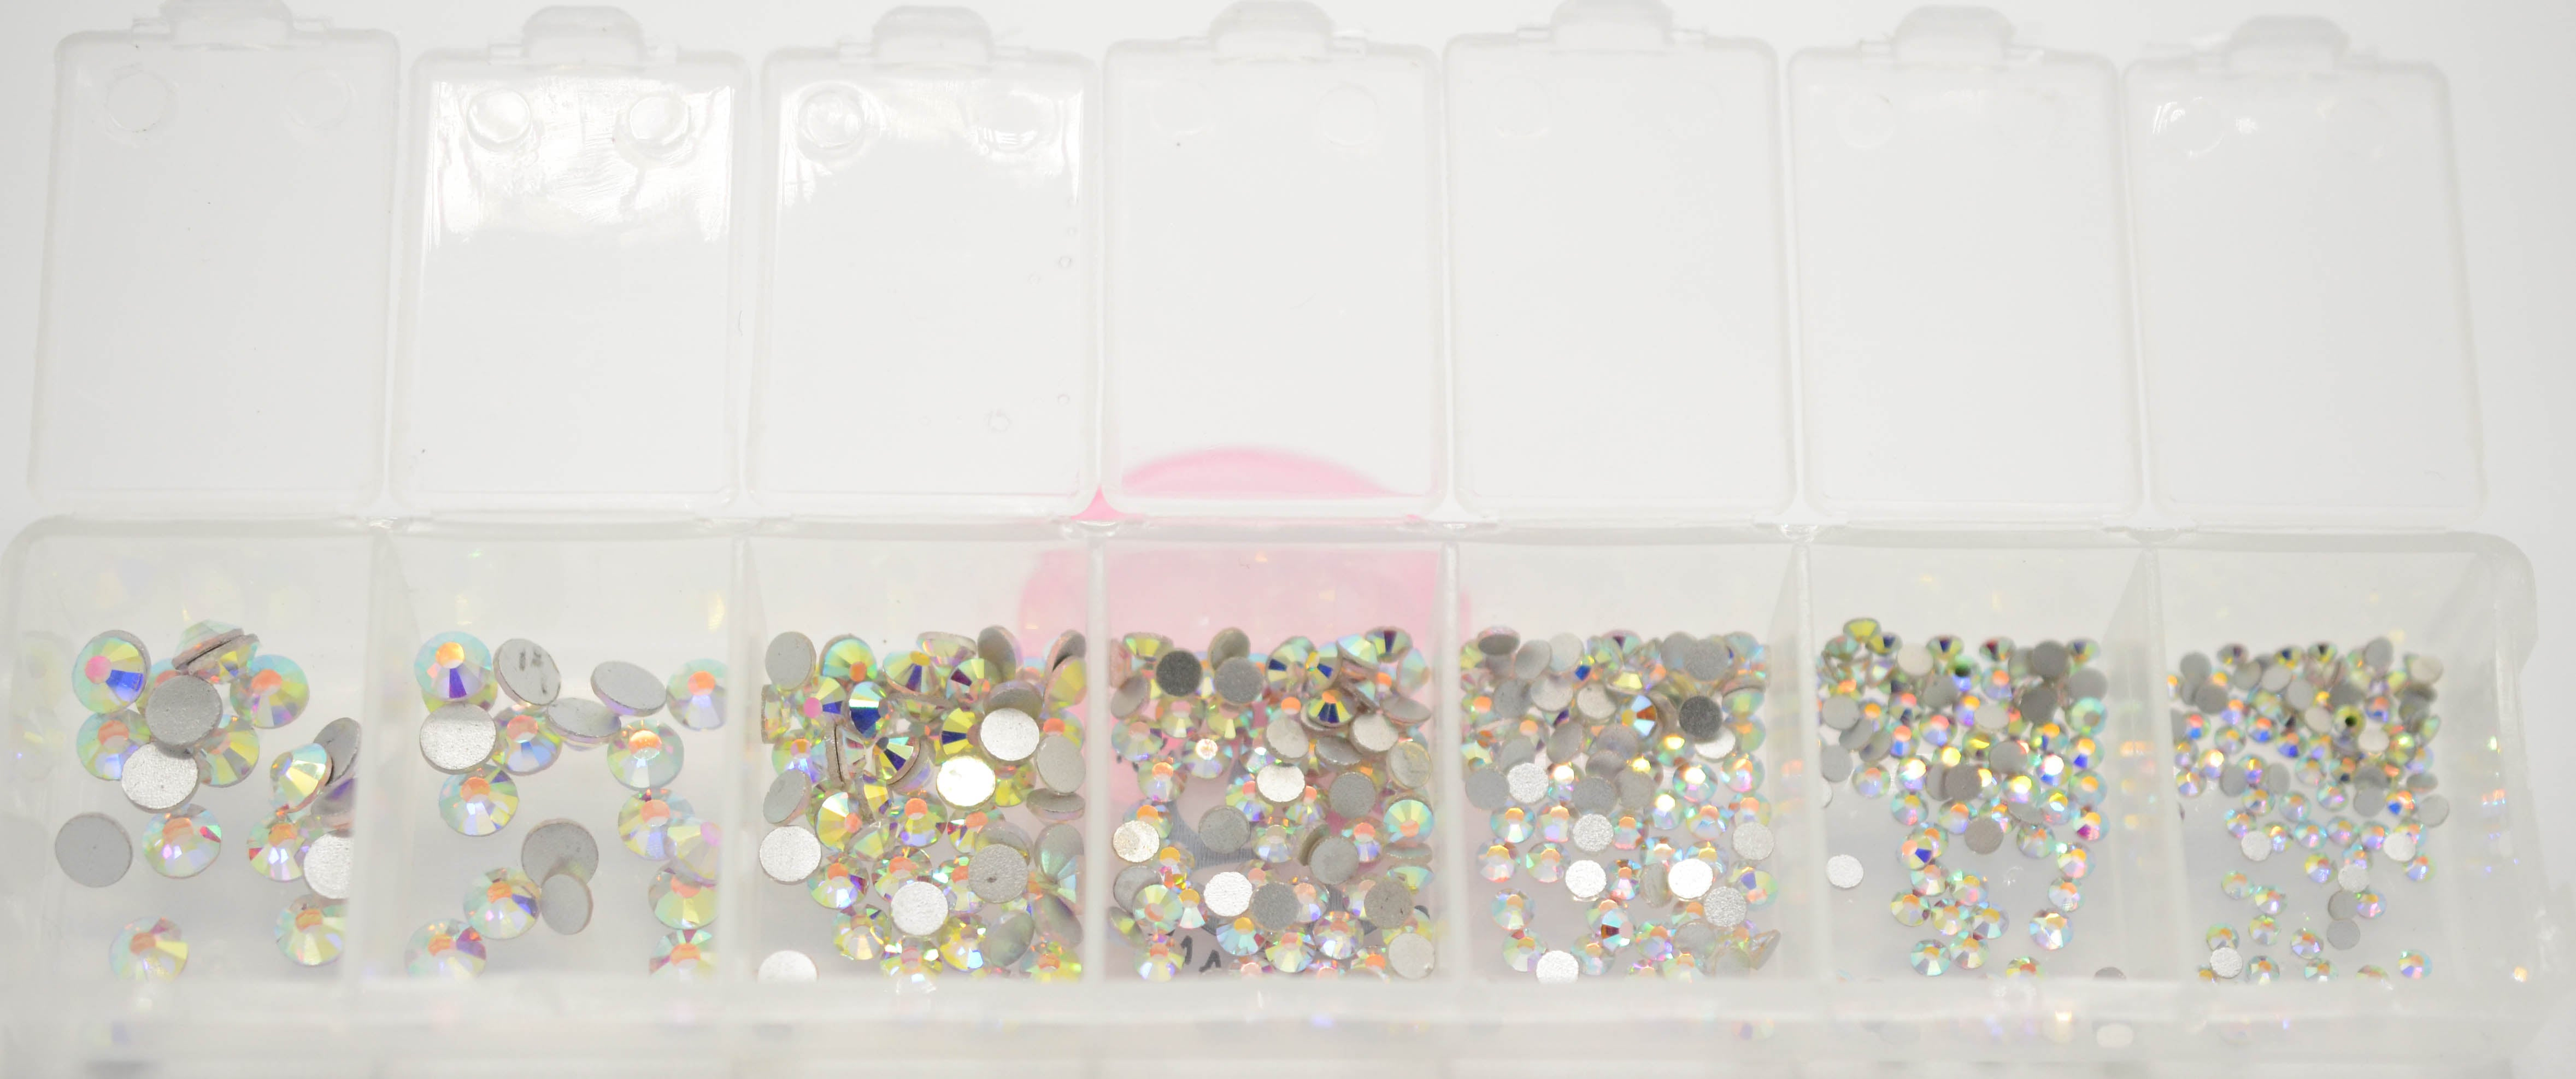 Swarovski Like Mix 420pc Row